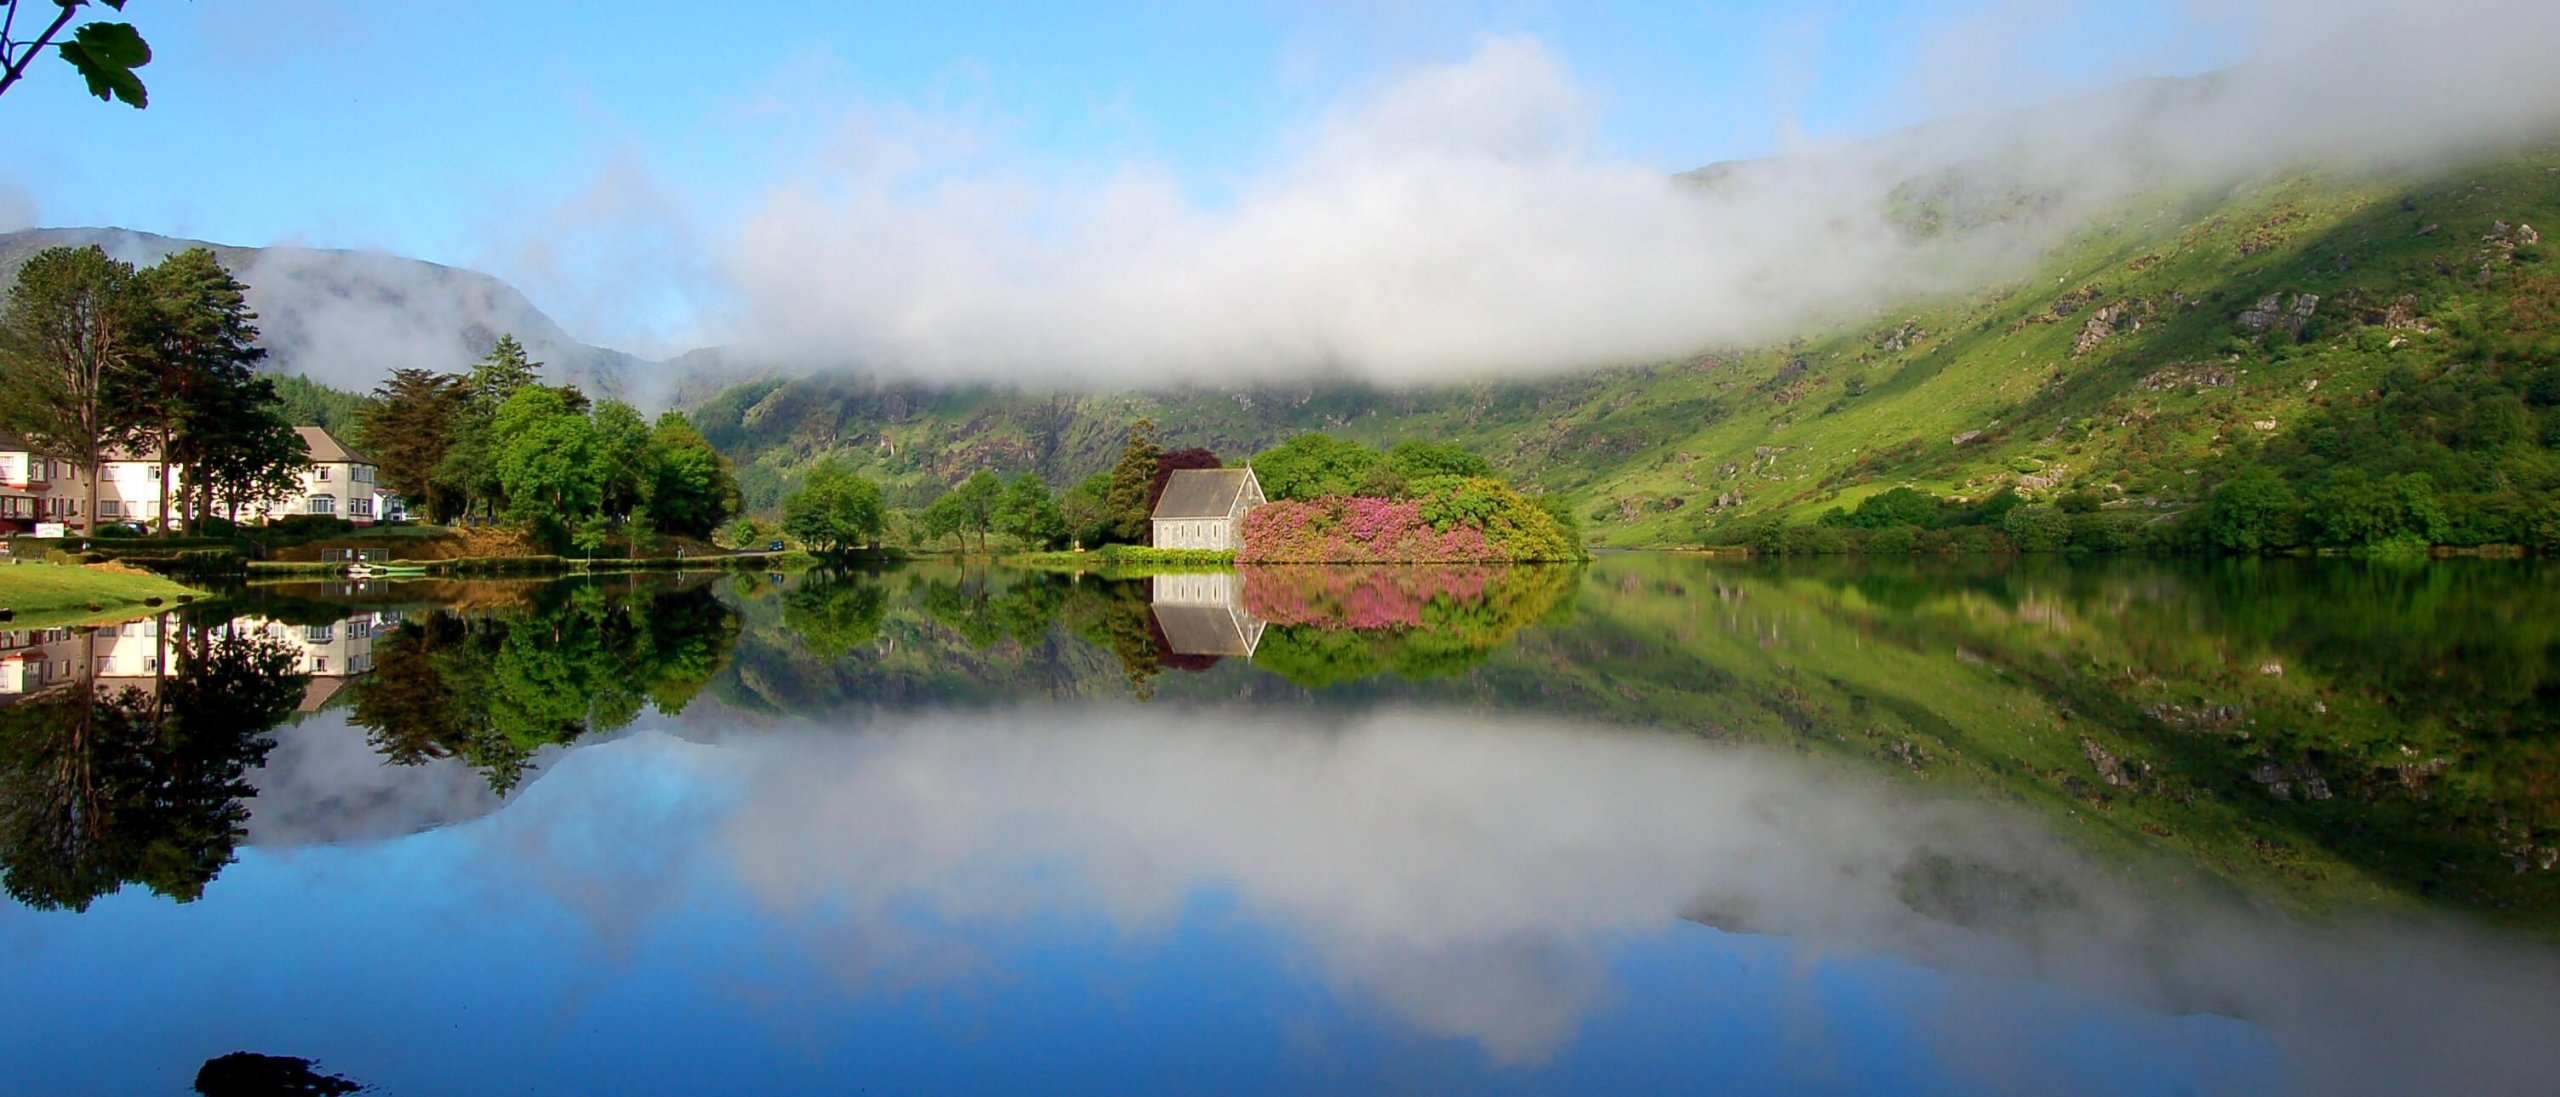 Scenic church and reflection of blue sky, clouds and mountains in the lake at Gougane Barra, Ireland